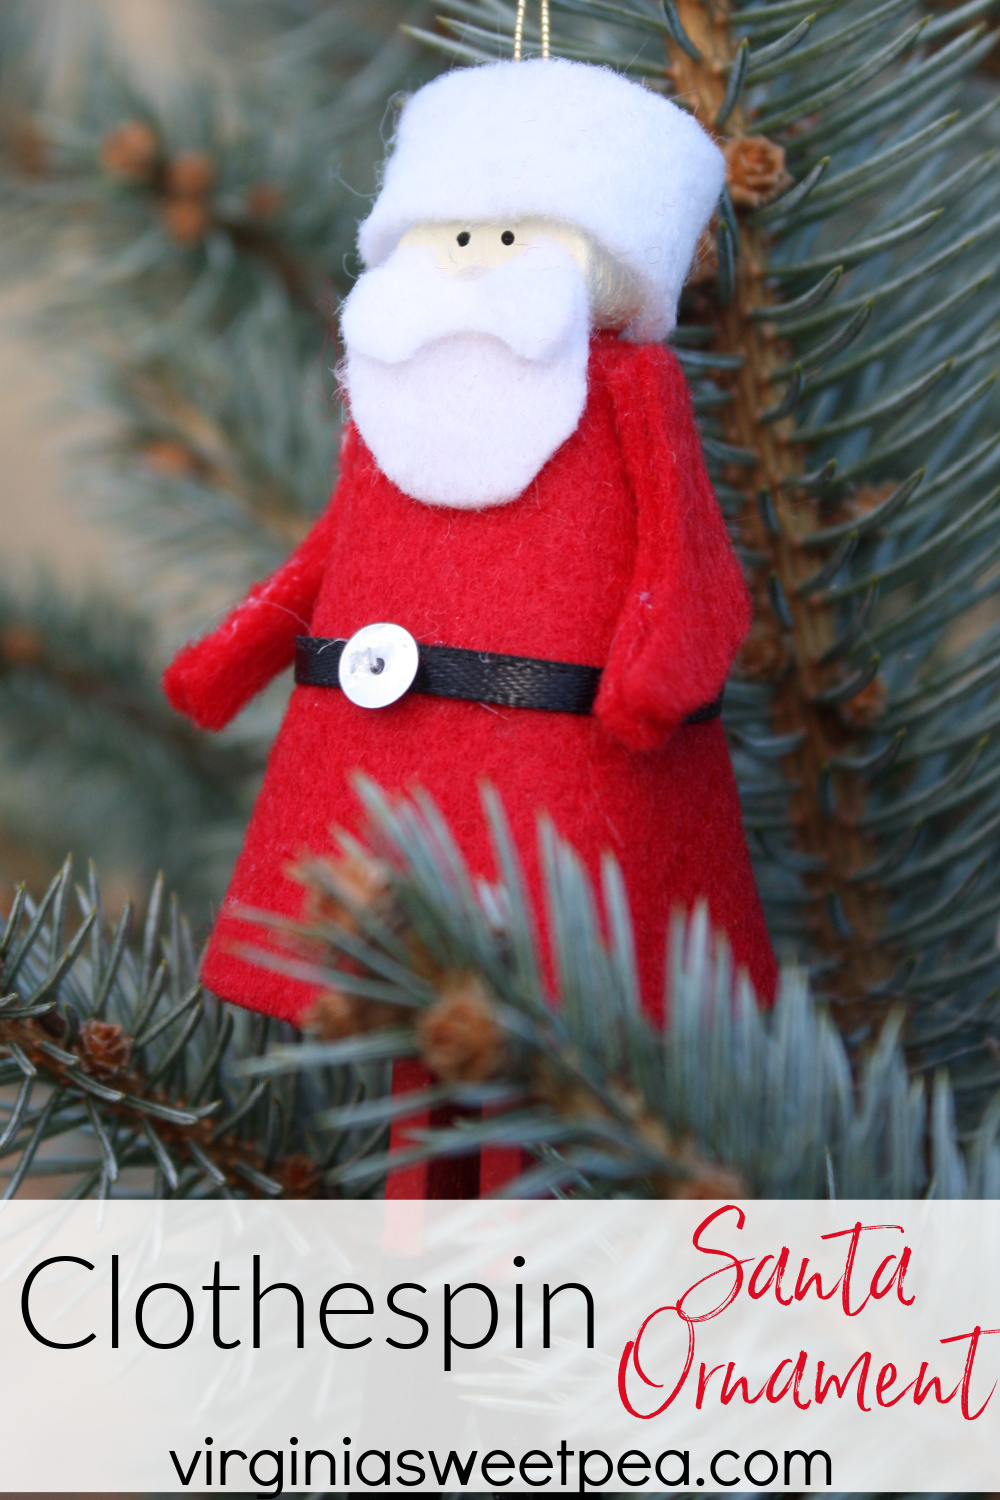 Clothespin Santa Ornament - Learn how to make a Santa ornament using a clothespin, felt, paint, and a sequin.  This is a fun craft to make with older kids and teens.  #handmadechristmasornament #handmadesantaornament #clothespinornament #clothespinsanta via @spaula